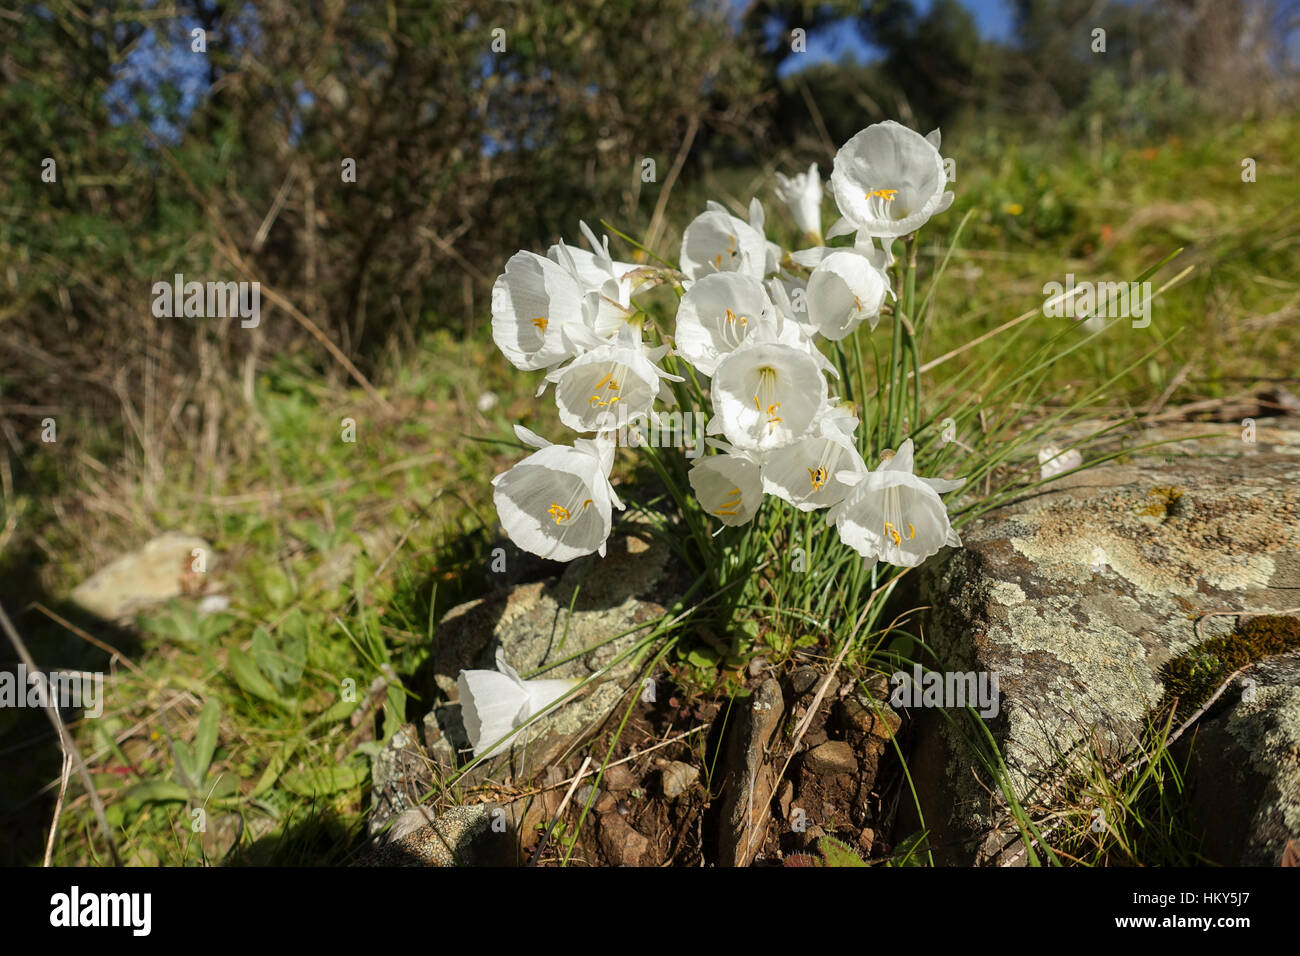 Narcissus cantabricus,White Hooped-Petticoat, flowering in winter in Andalusia, Spain - Stock Image